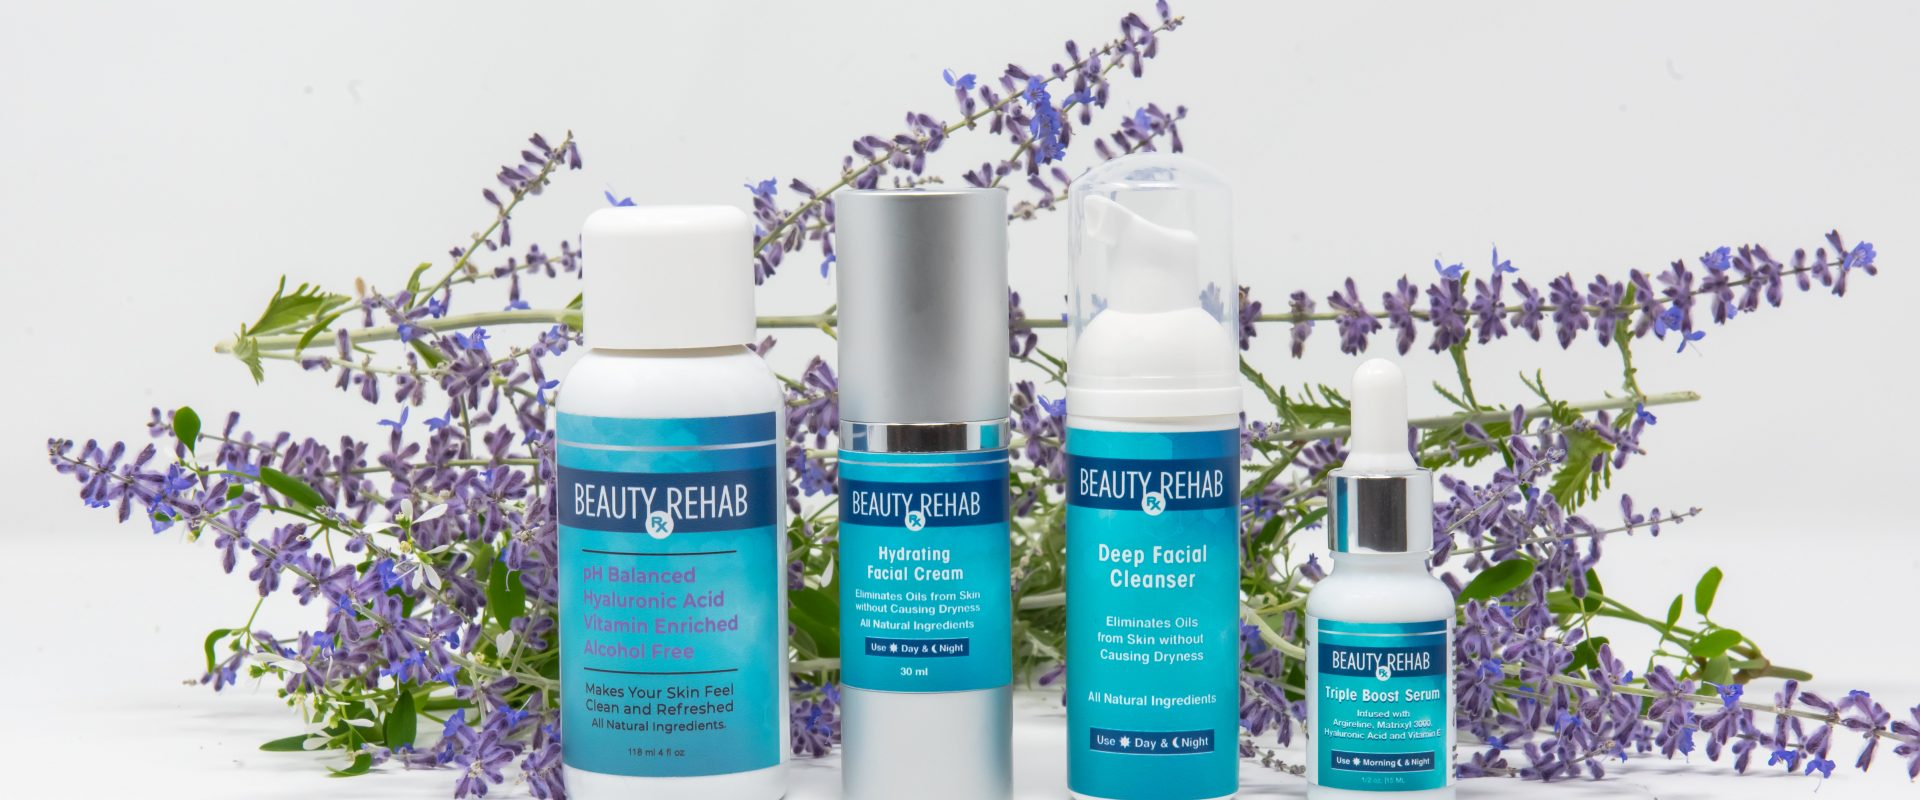 Beauty Rehab Products